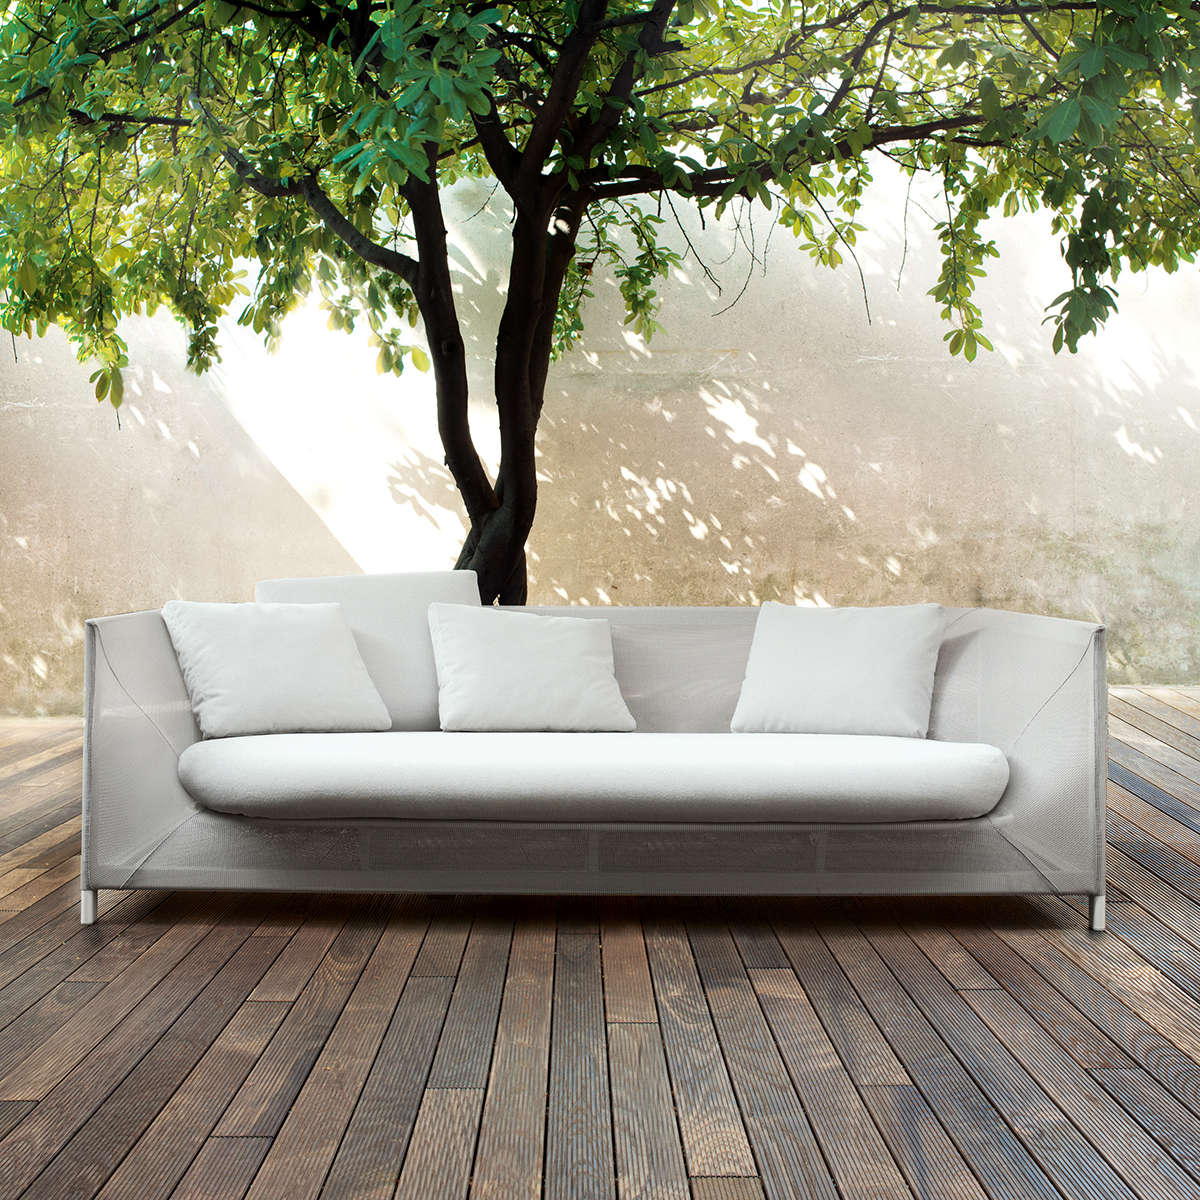 Paola Lenti Haven Hr 2